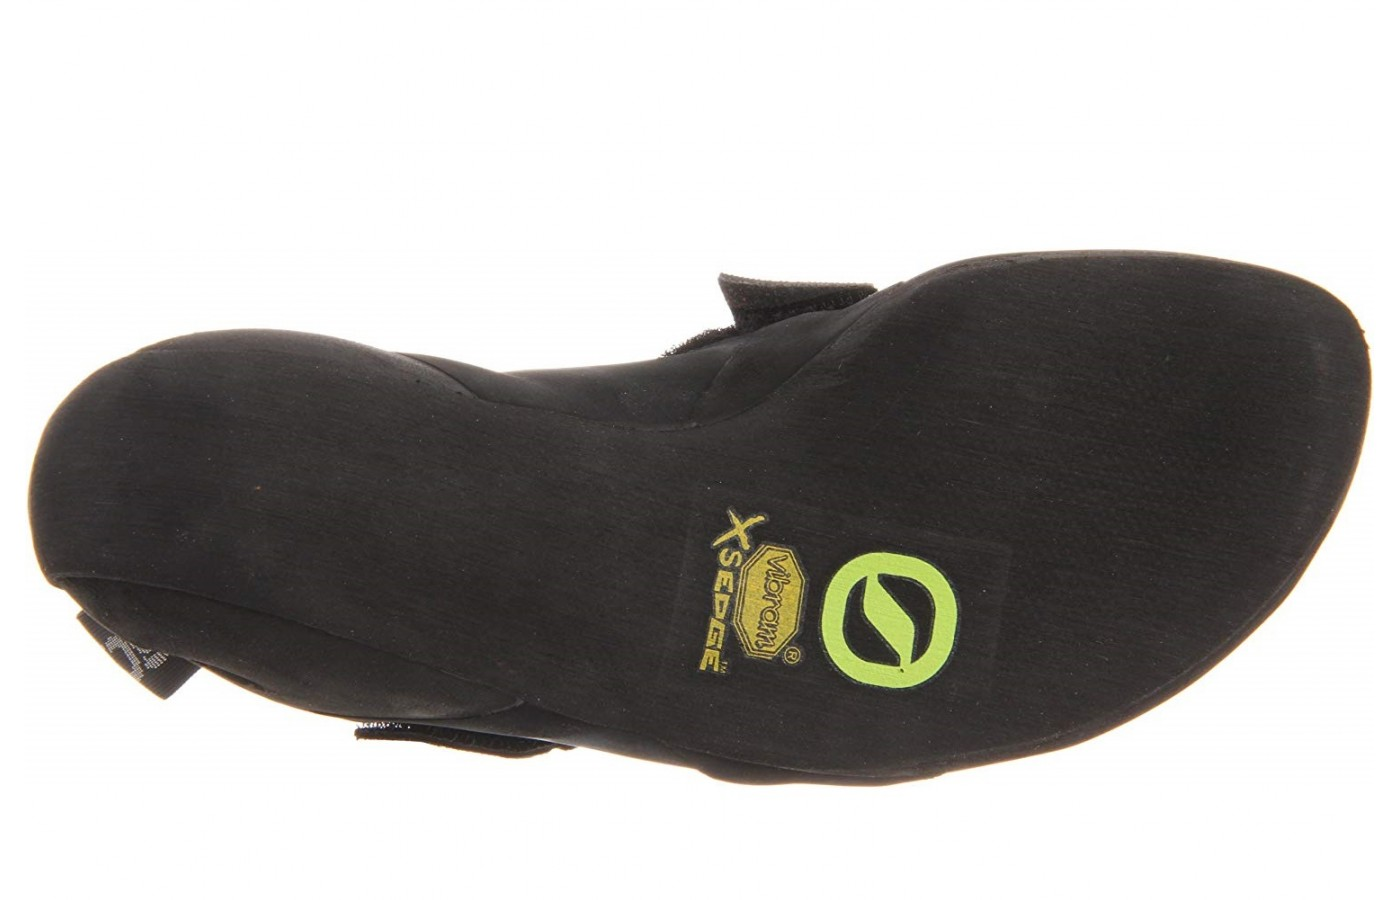 The outsole of the Scarpa Boostic is made of a 3.5 mm Vibram XS Edge material for optimum grip.